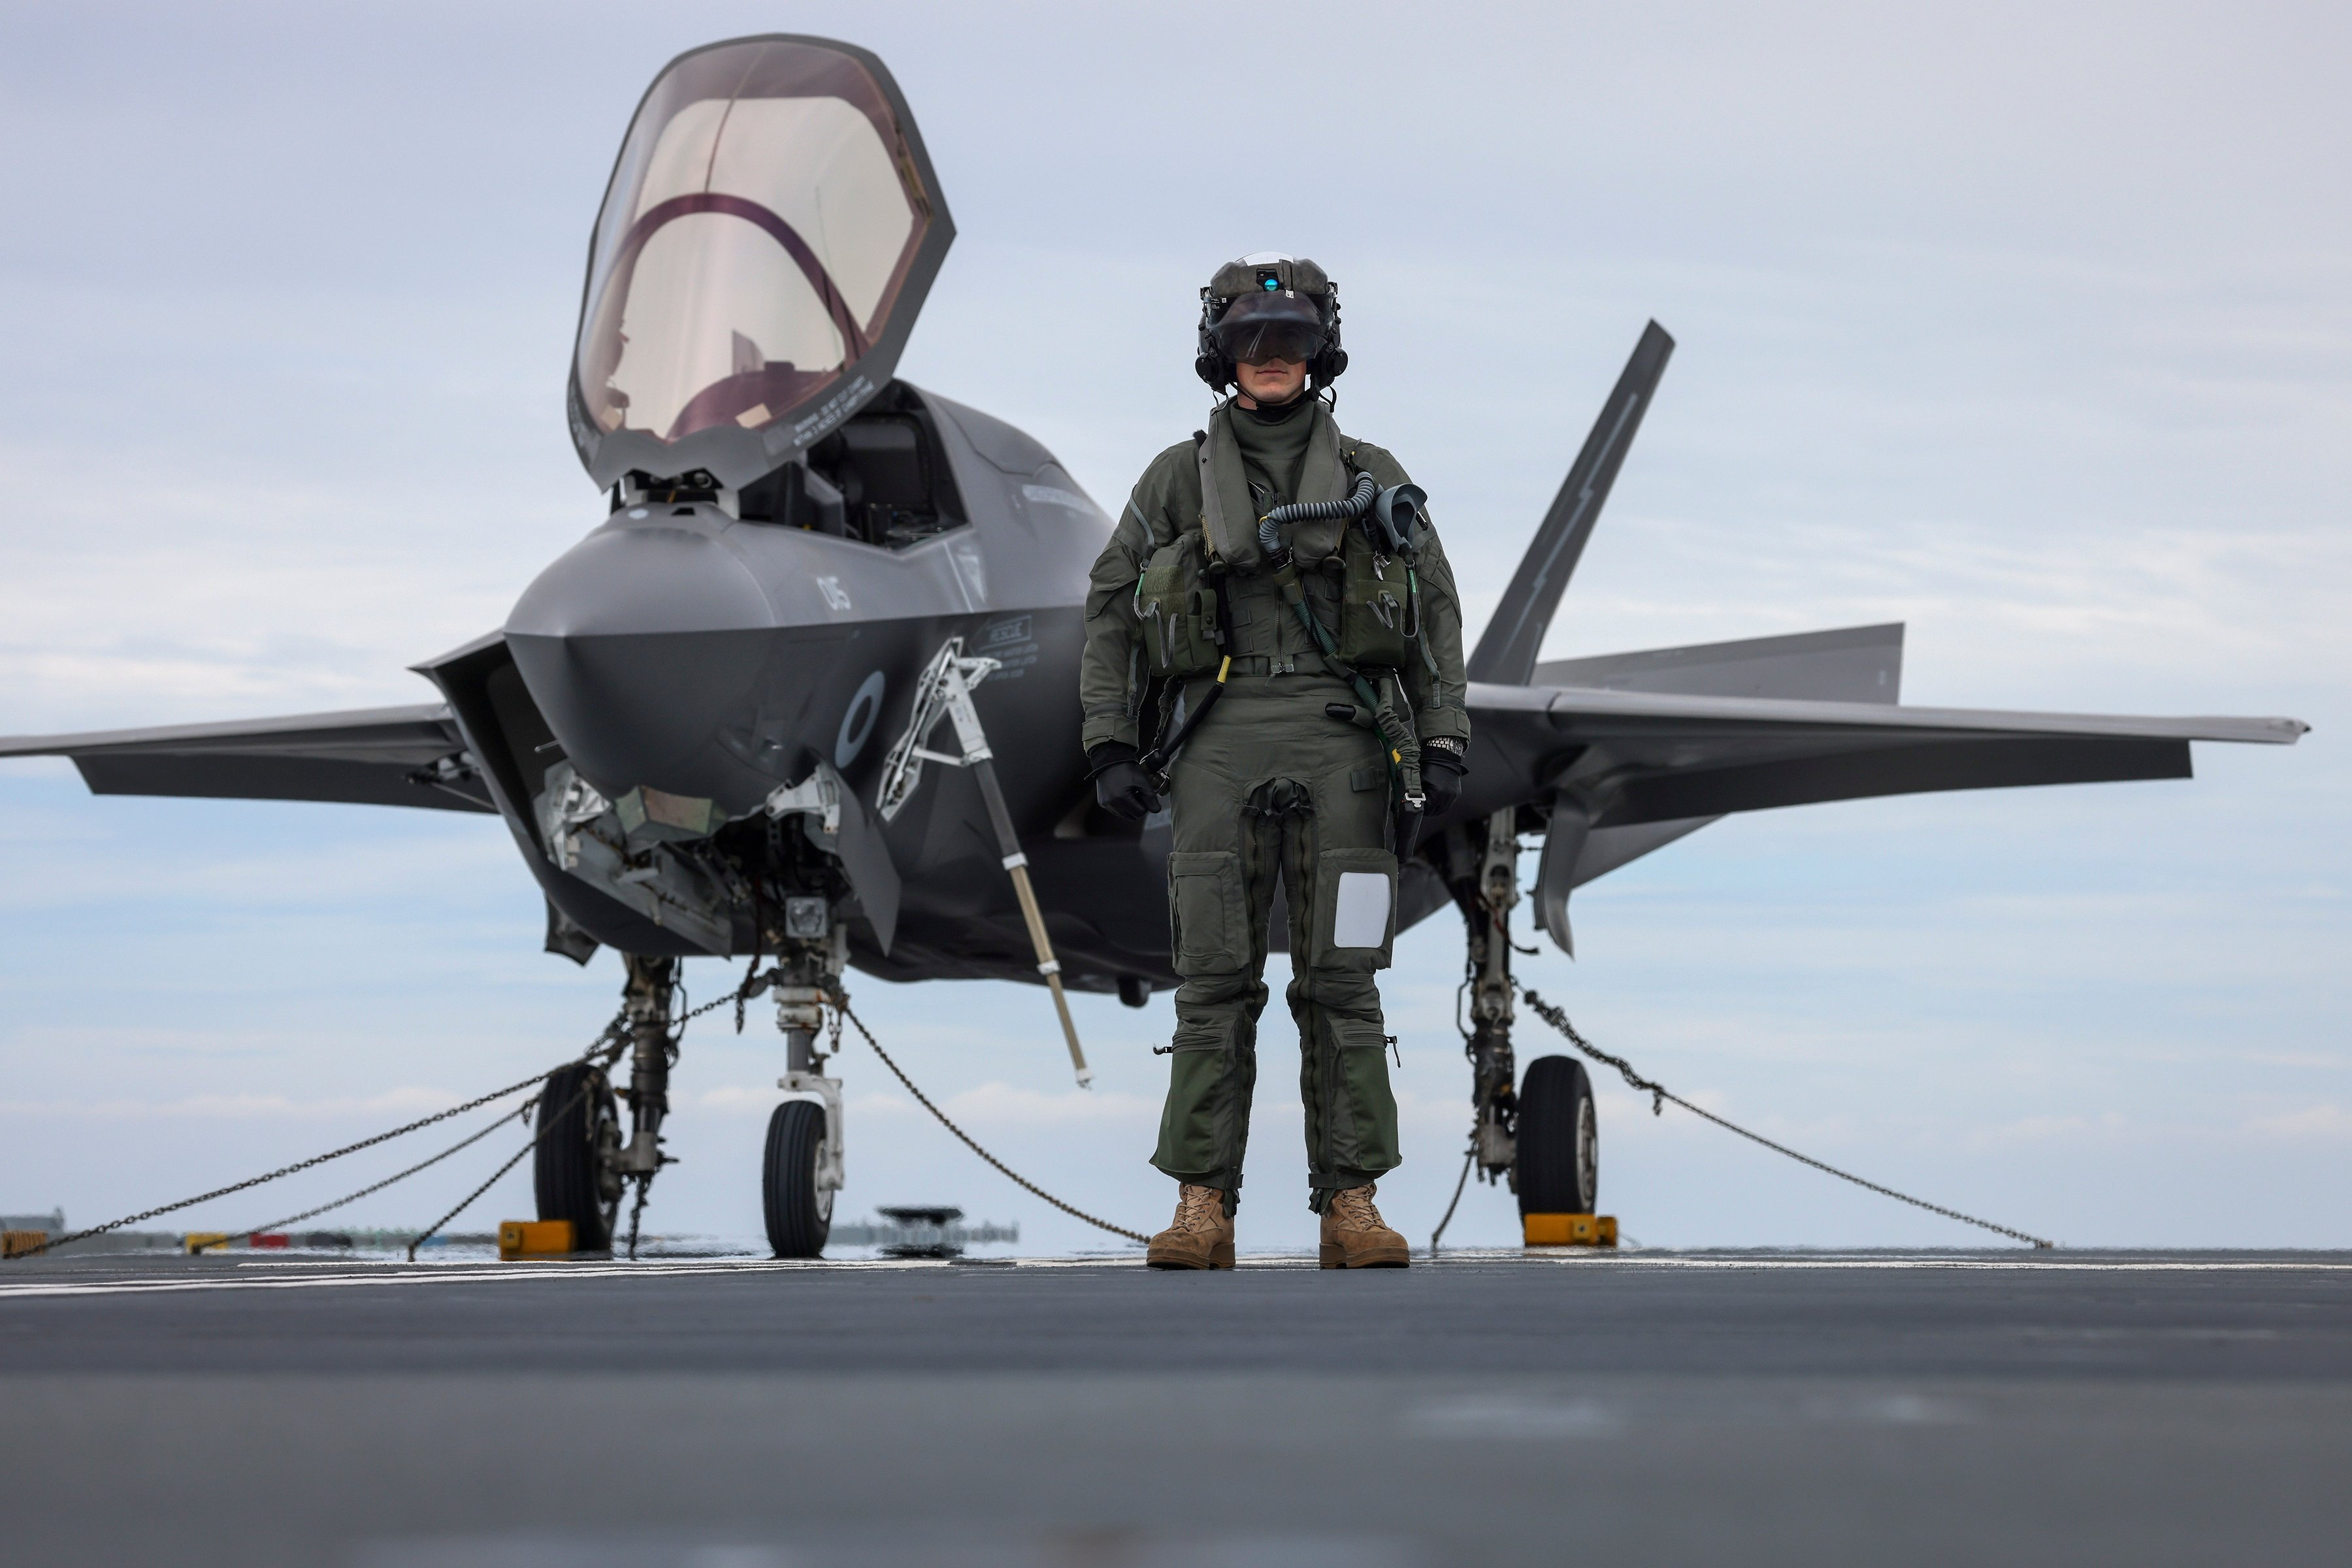 Sqn Ldr Will poses with F-35B on HMS PWLS 07-06-21 [MOD Crown Copyright/Leading Photographer Finn Hutchins]